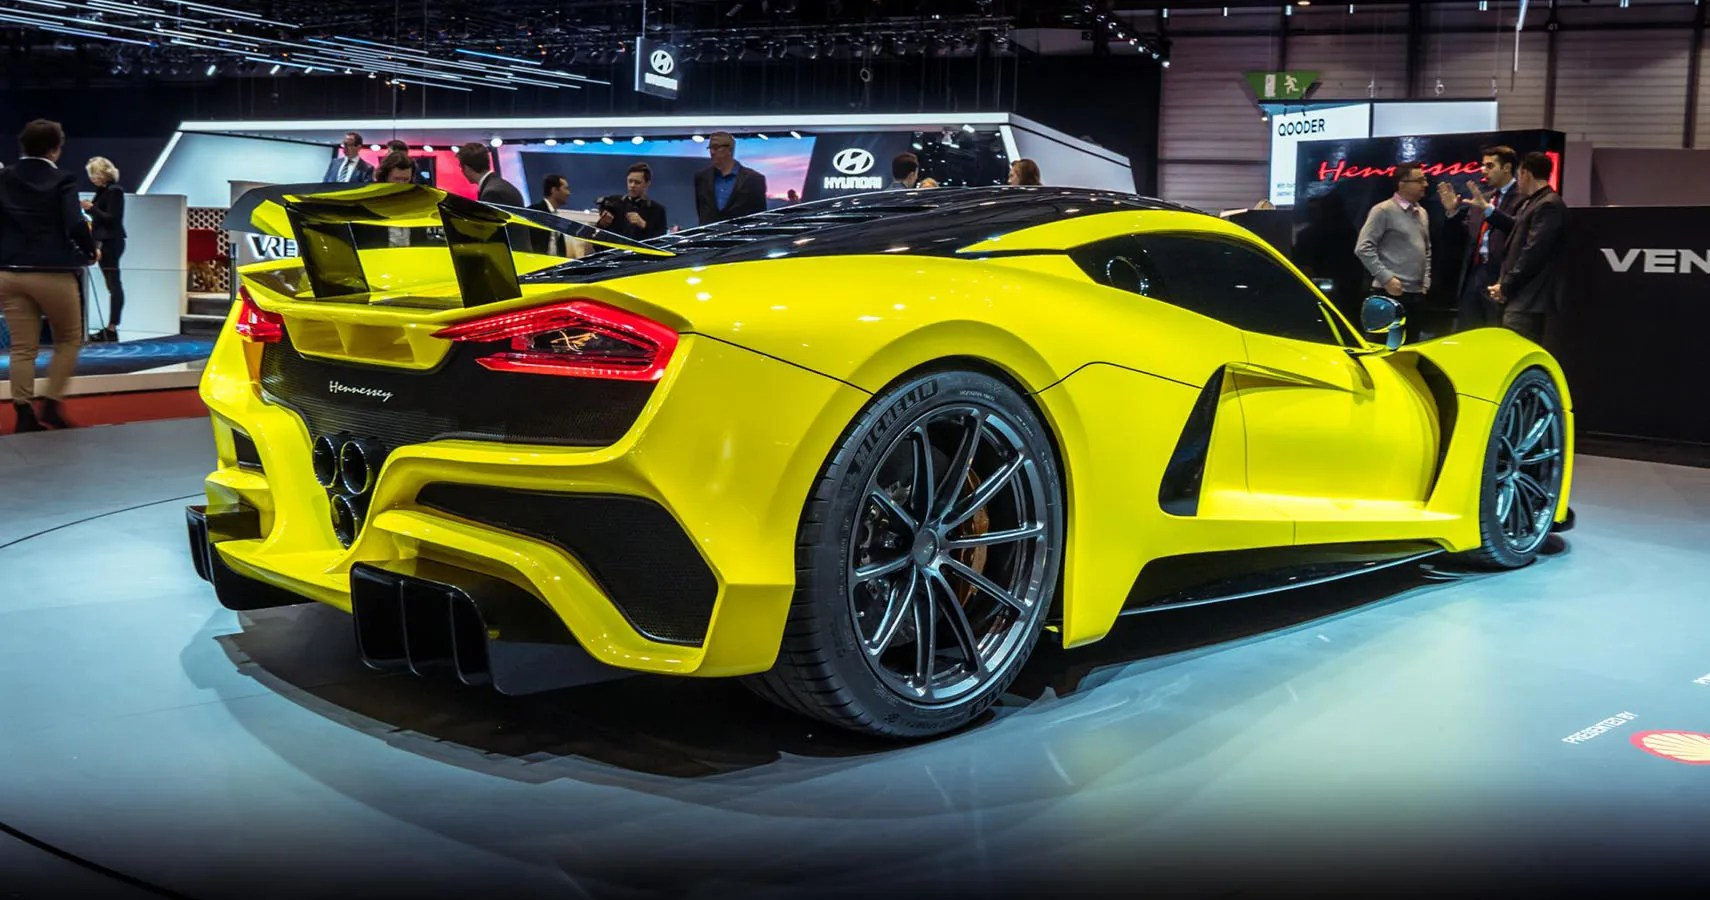 2018 Hennessey Venom F5 Hennessey Venom F5 Could Be First Road Car To Break 300 Mph